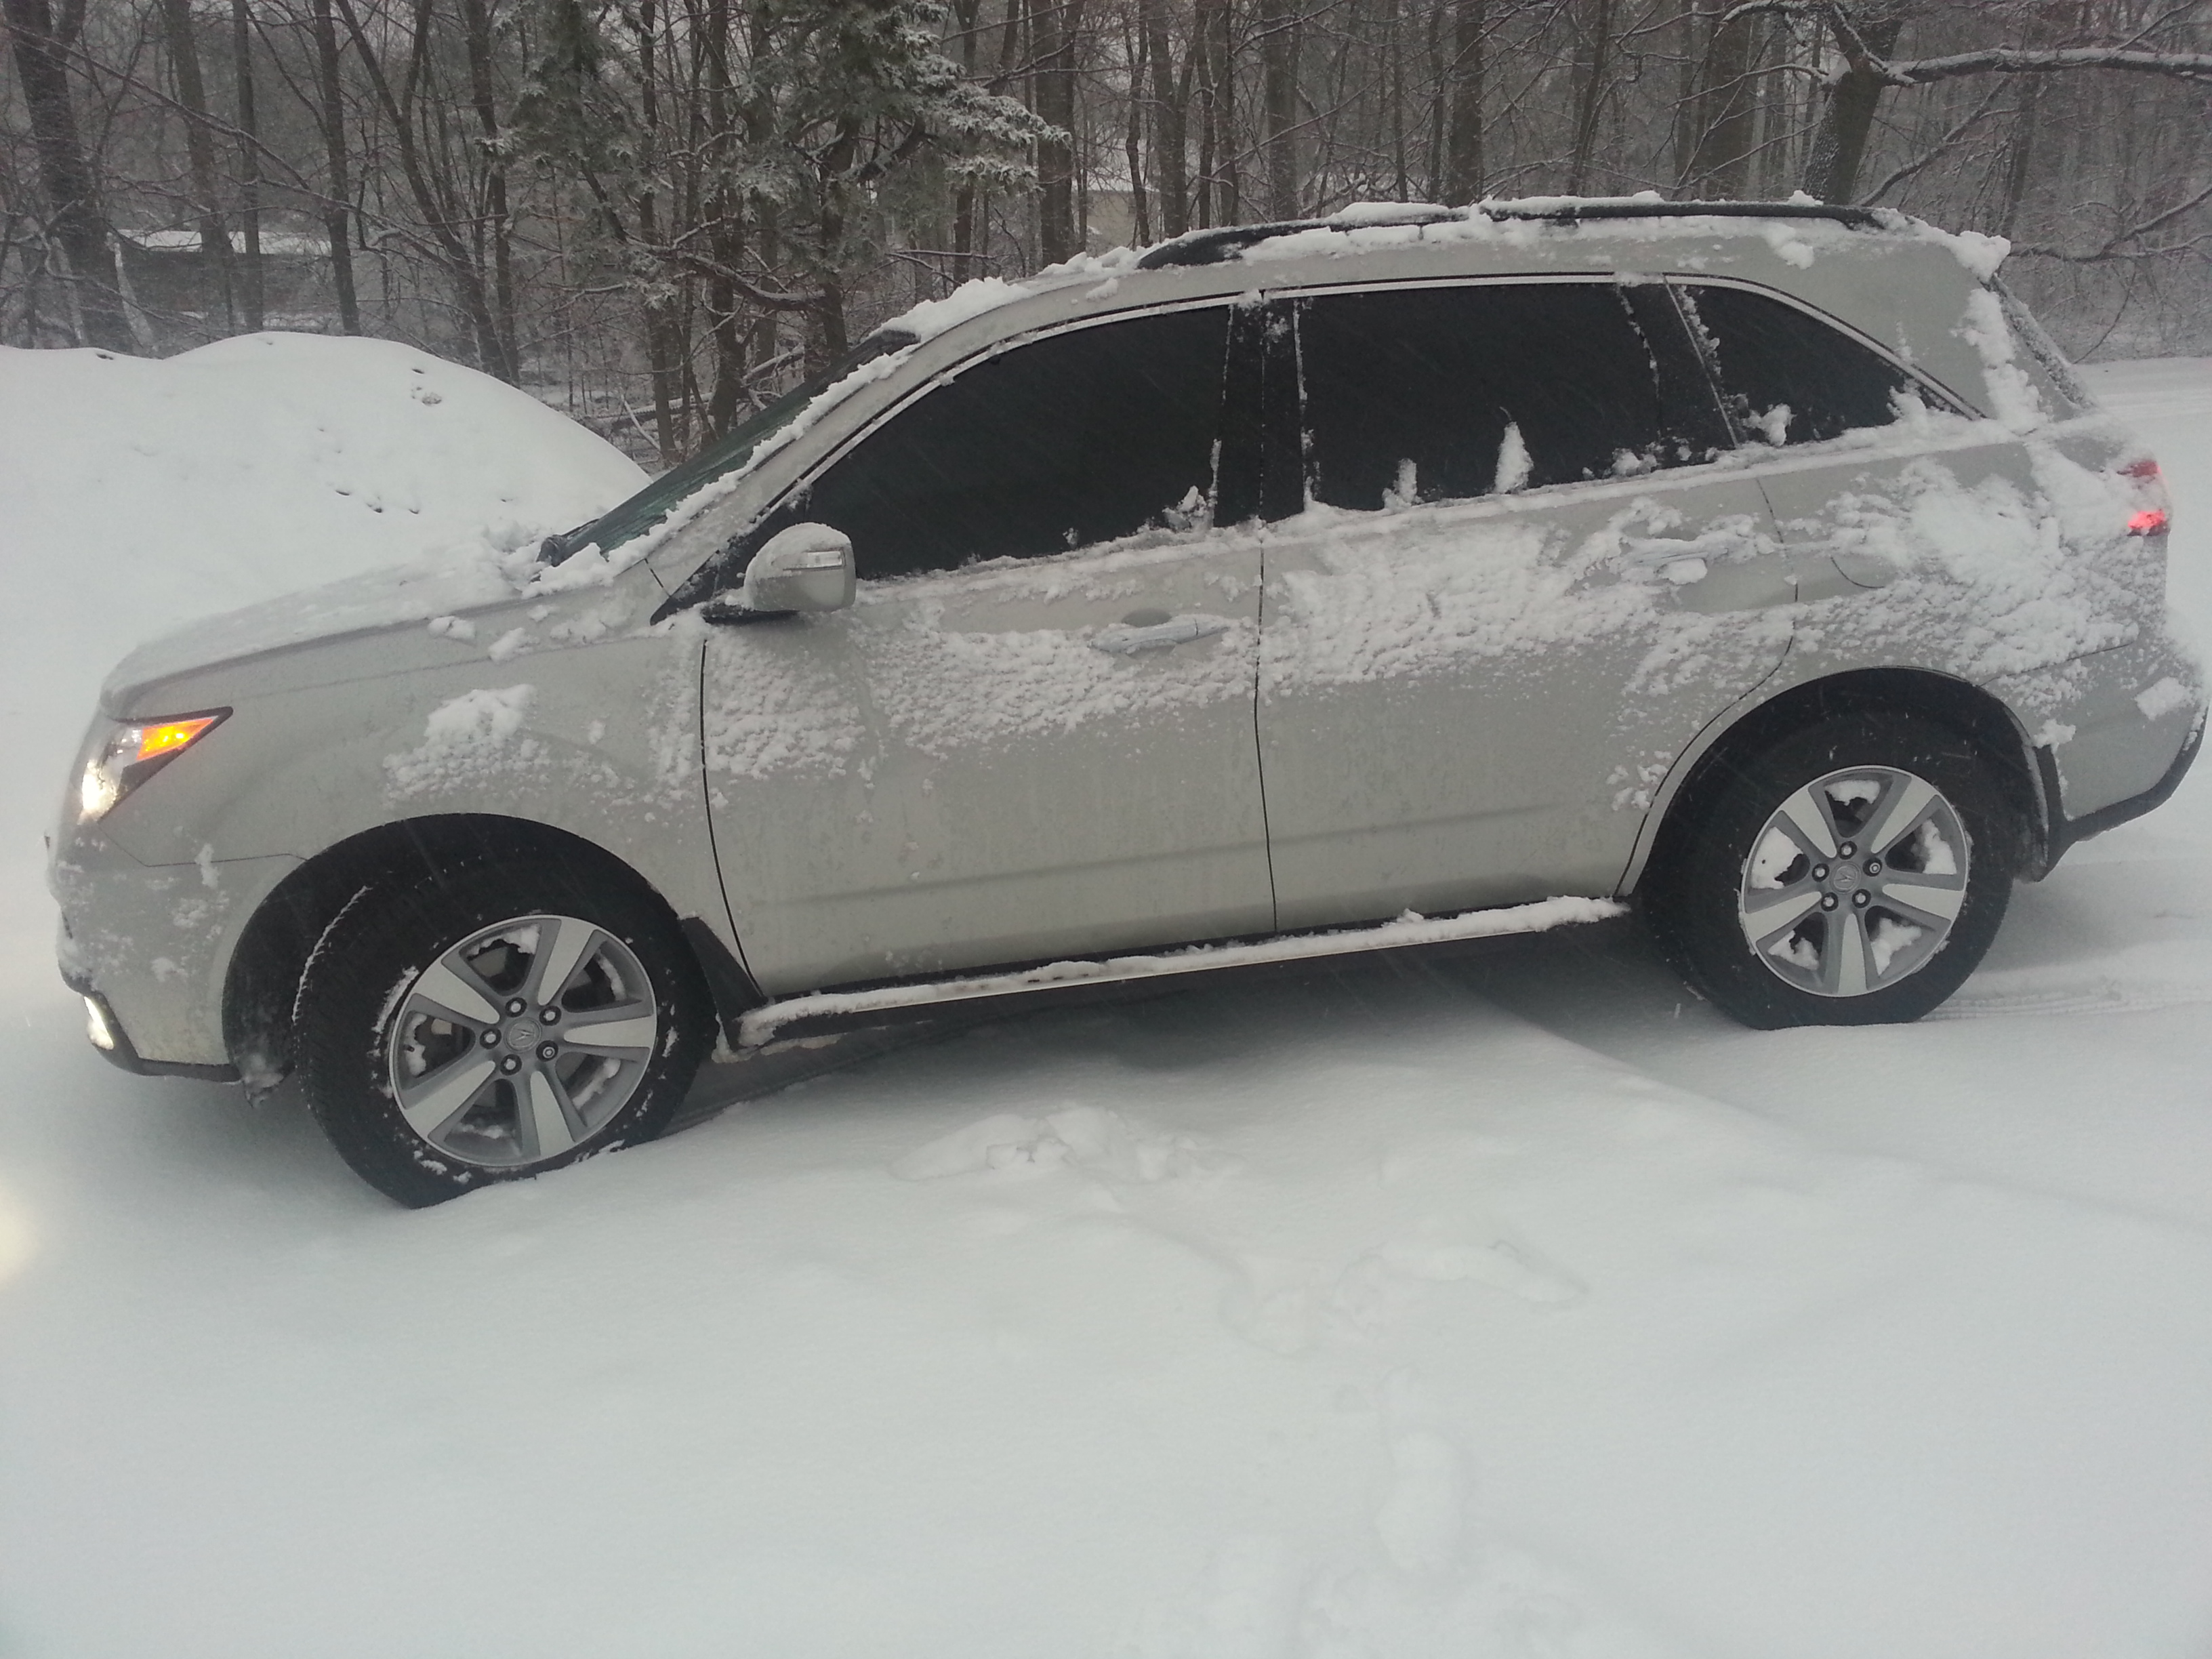 The new england storm of 2013.. how did your mdx do?-20130208_170215.jpg